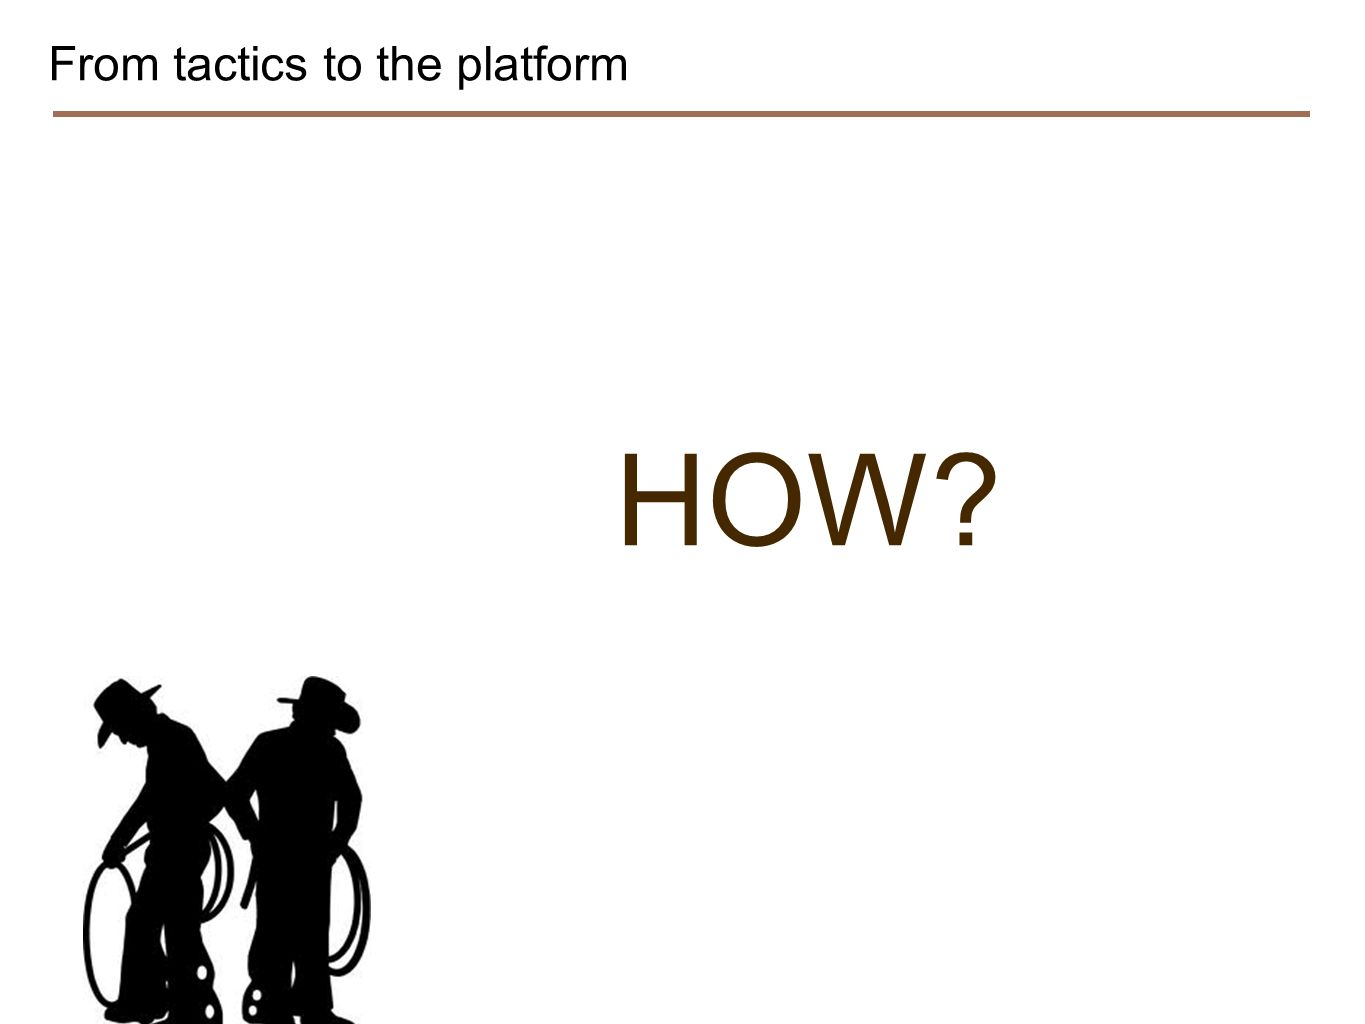 From tactics to the platform HOW?